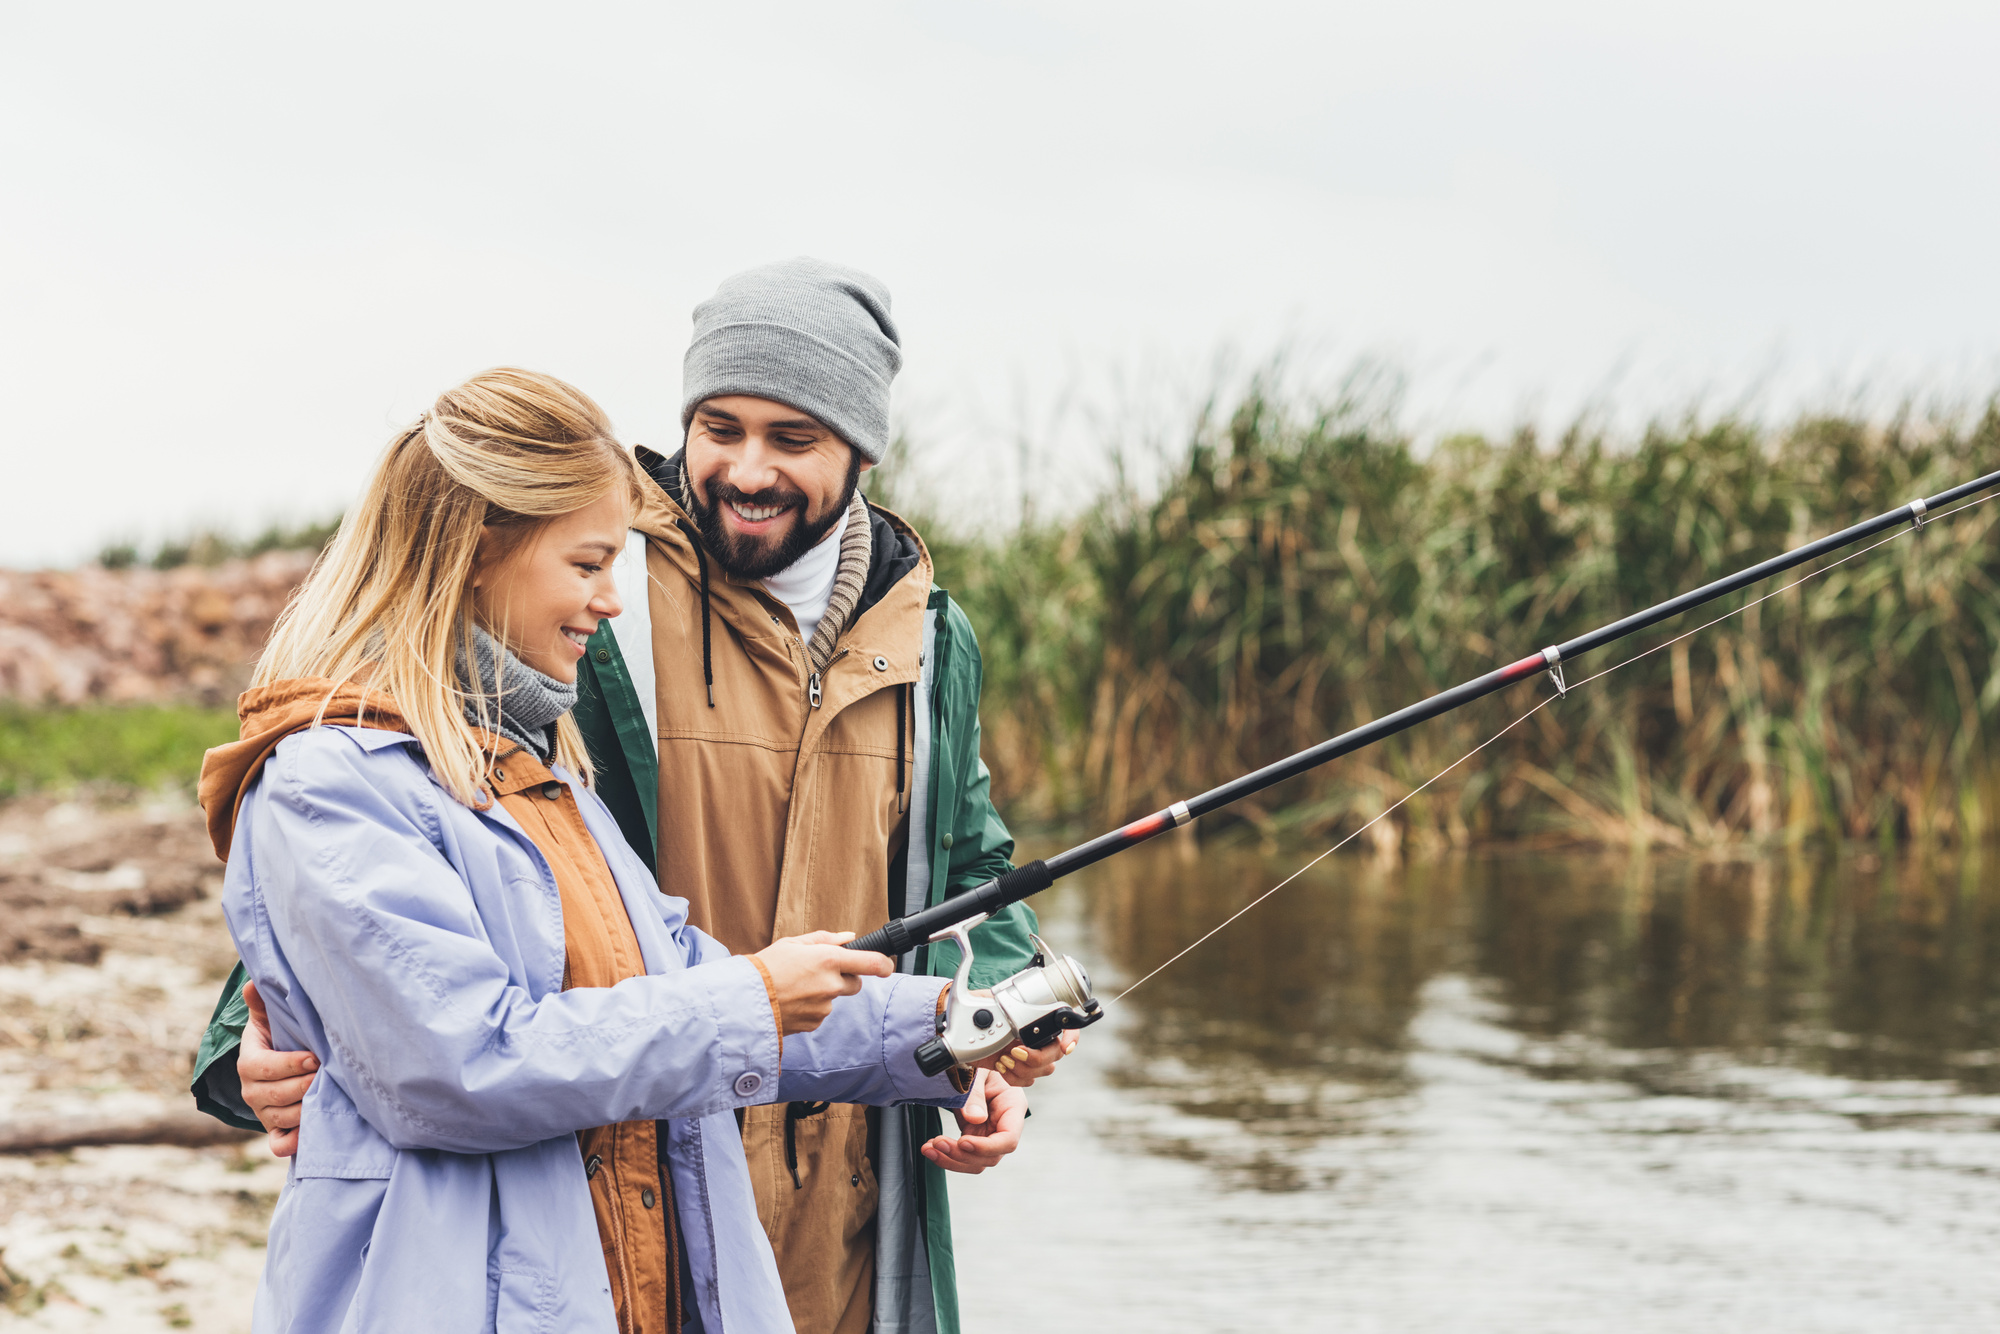 Couple Fishing Together